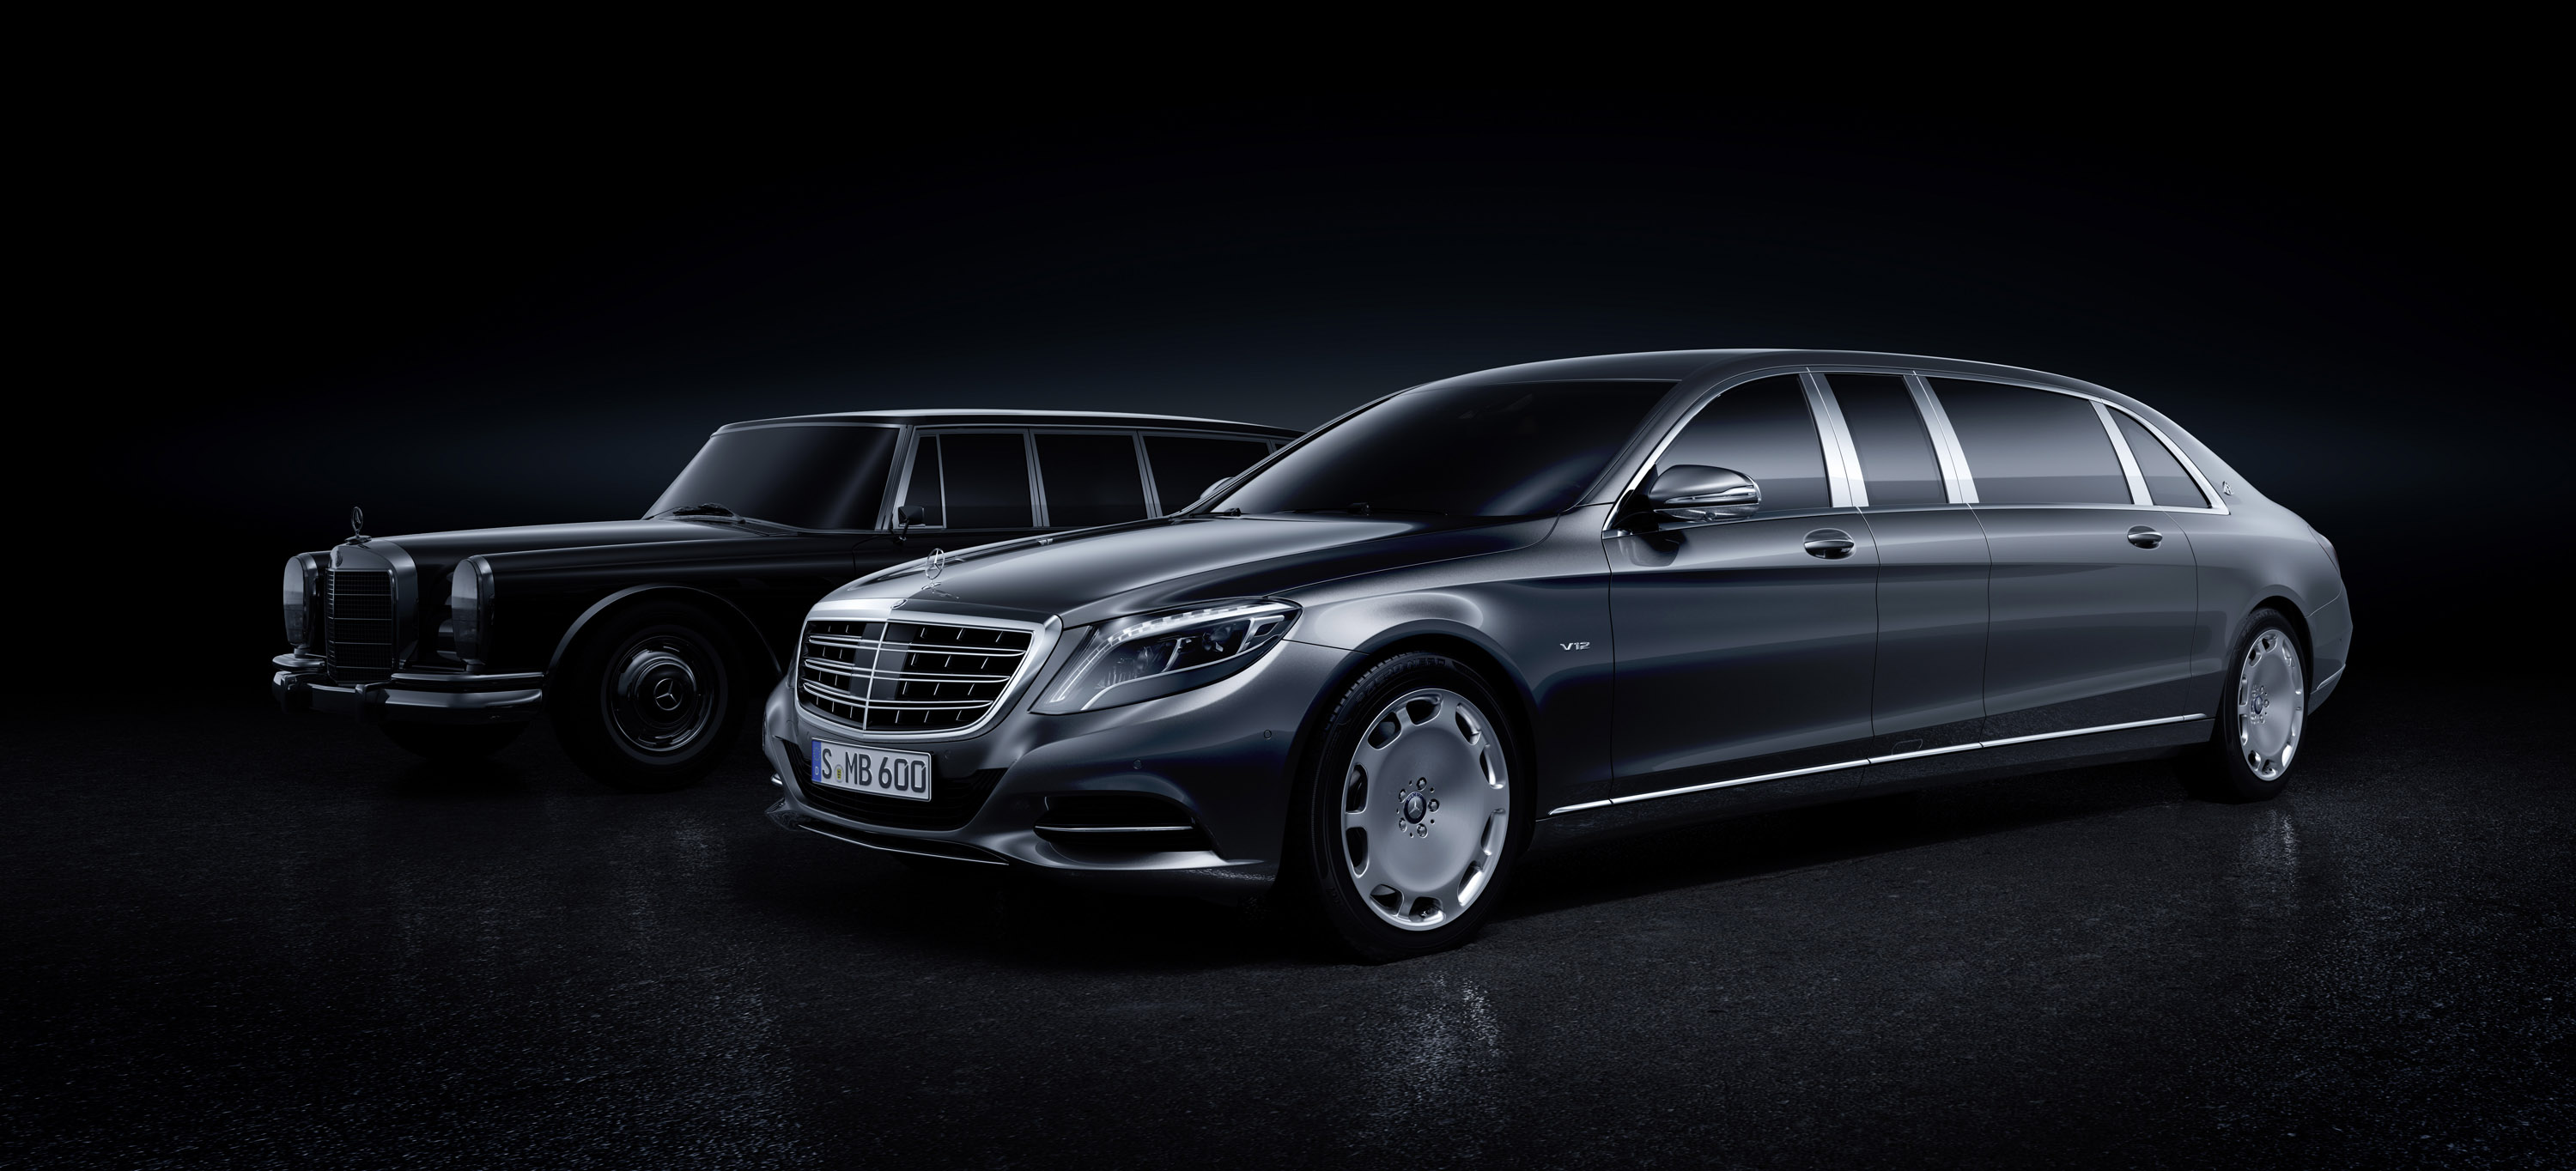 2016 mercedes benz s600 pullman maybach hd pictures for S600 mercedes benz